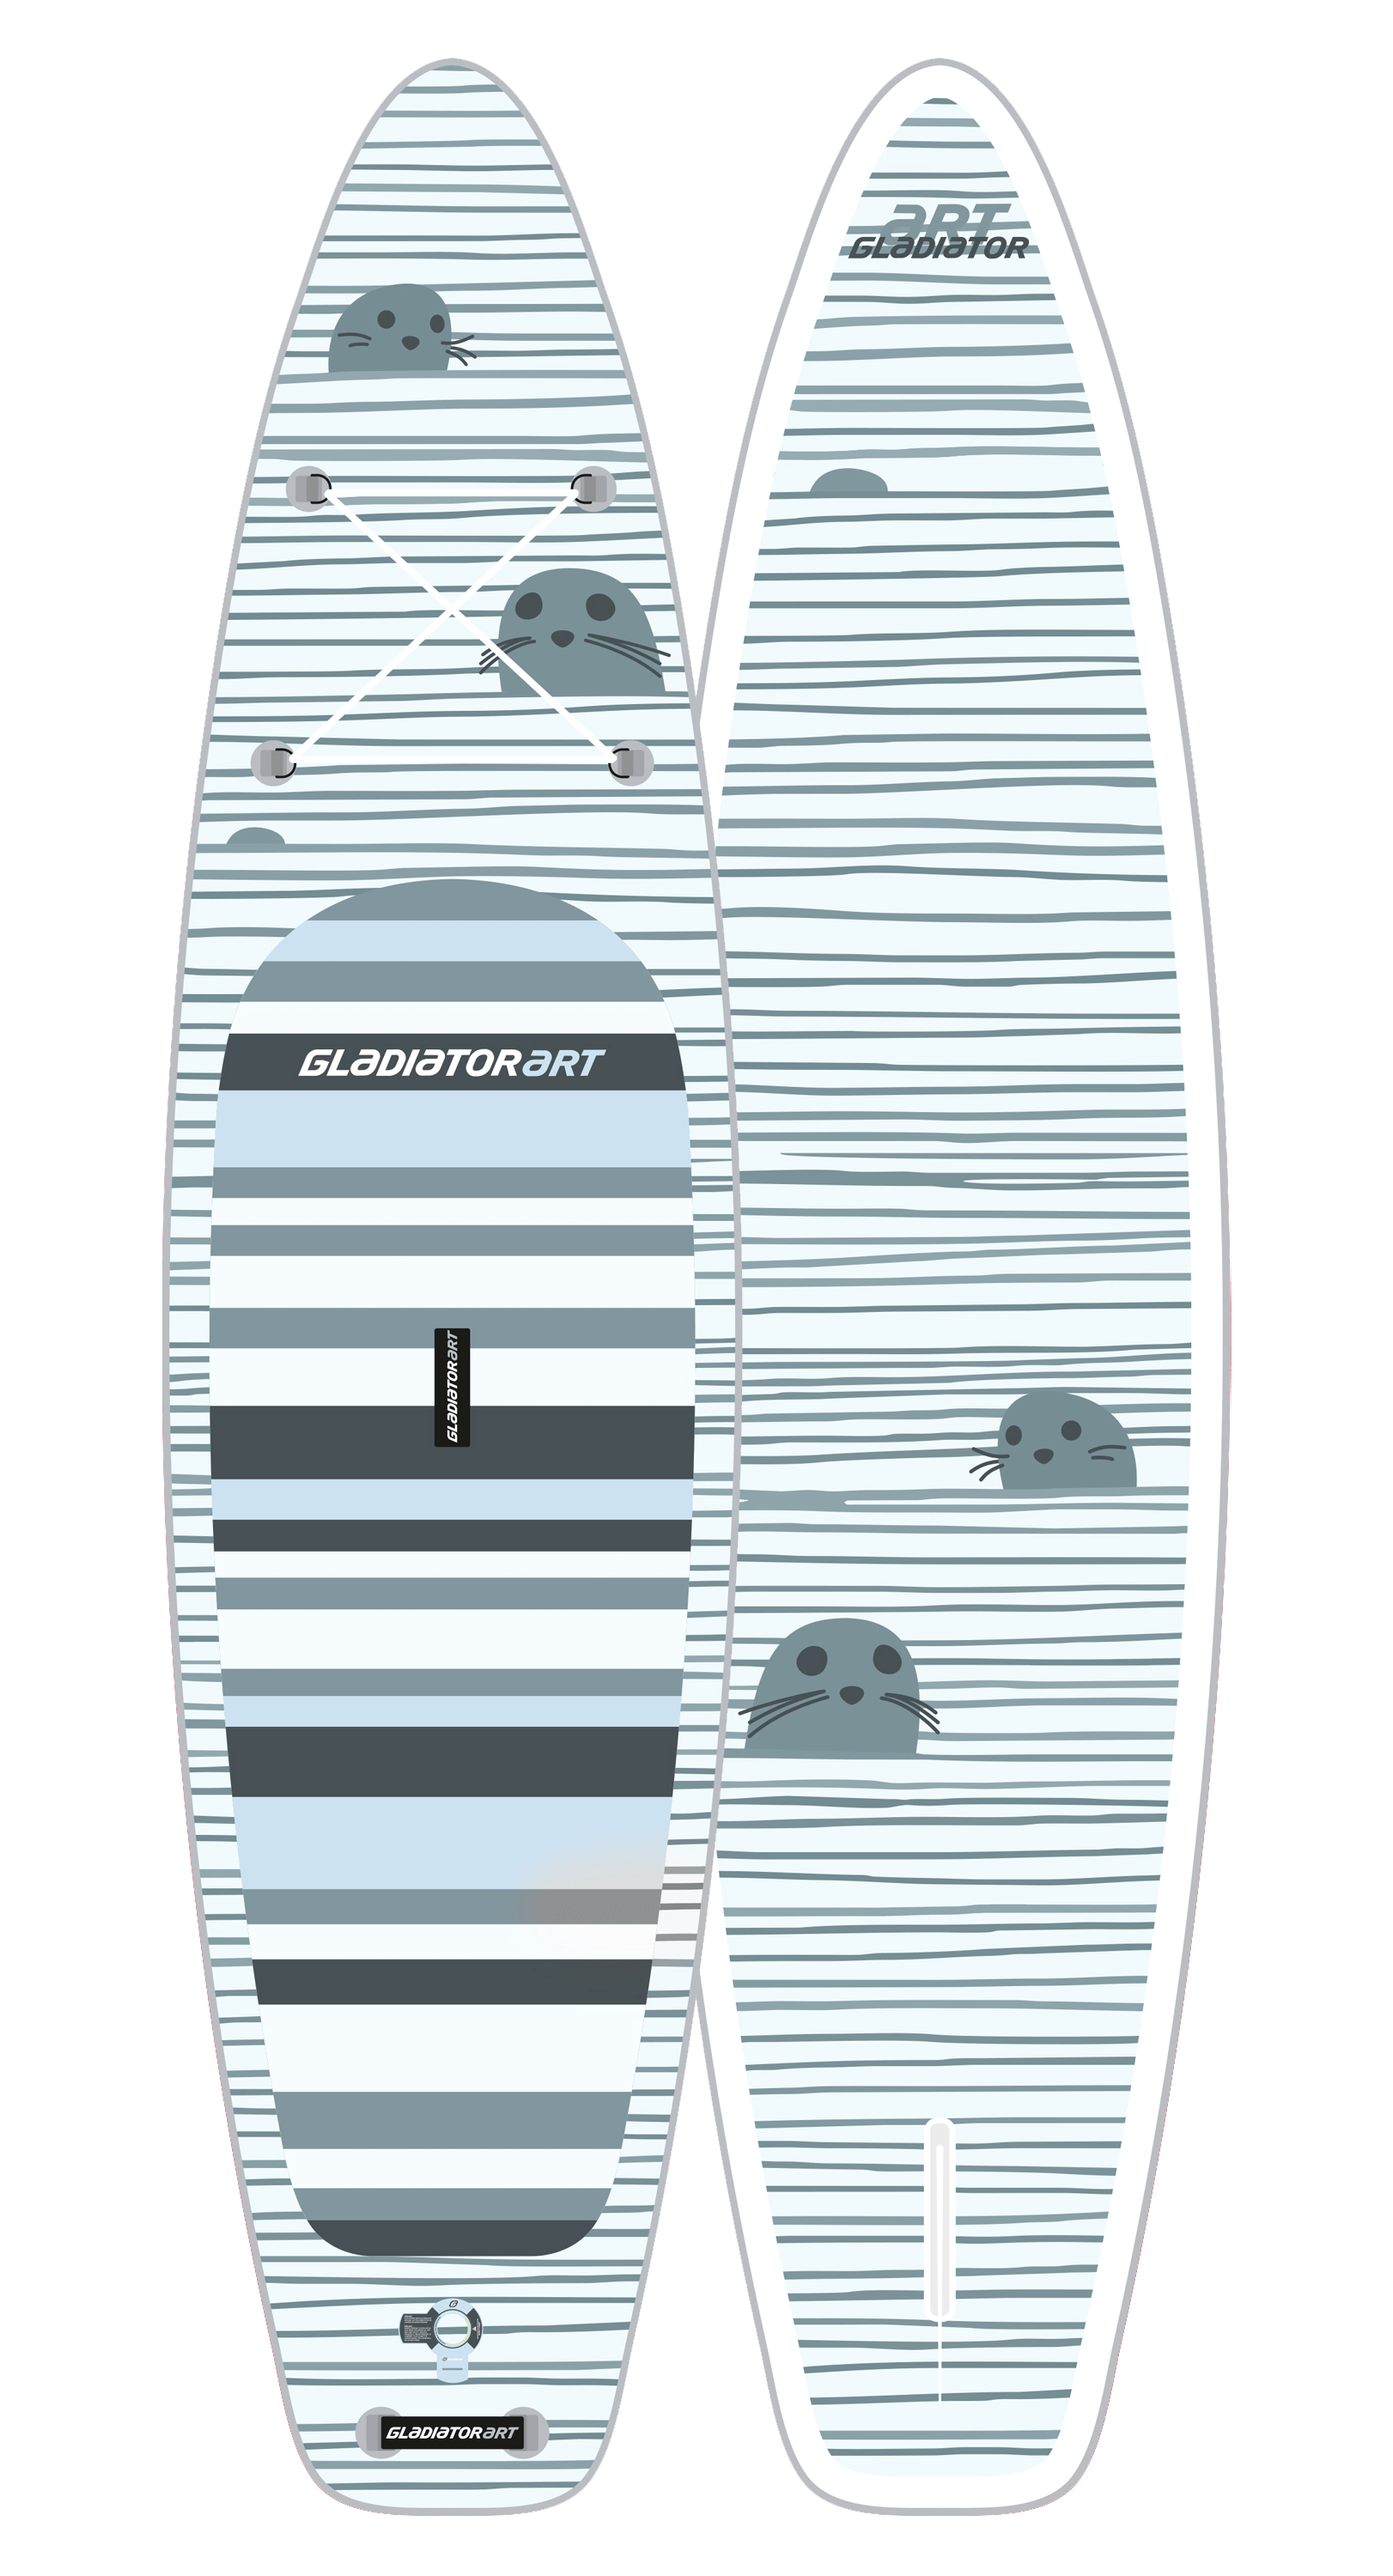 Надувной SUP борд GLADIATOR ART SEAL 12,6